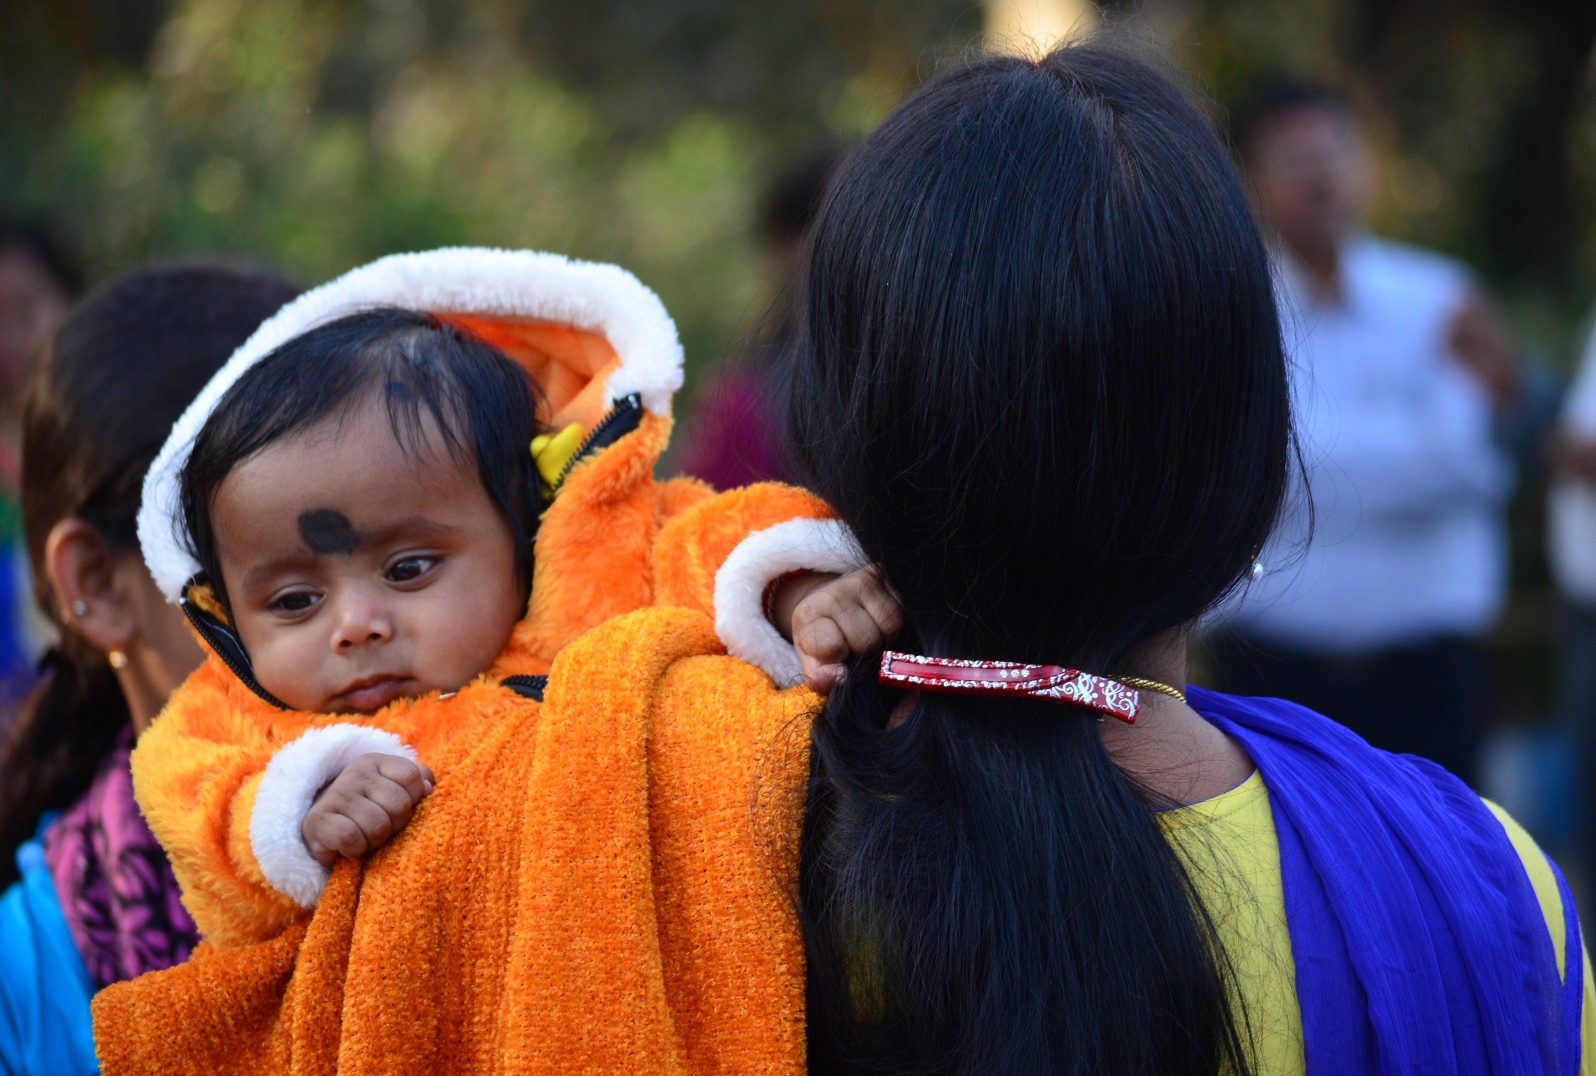 In every winter citizens of Kolkata gather at Kolkata Maidan along with their children. So one fine afternoon I have taken this candid moment of the child.